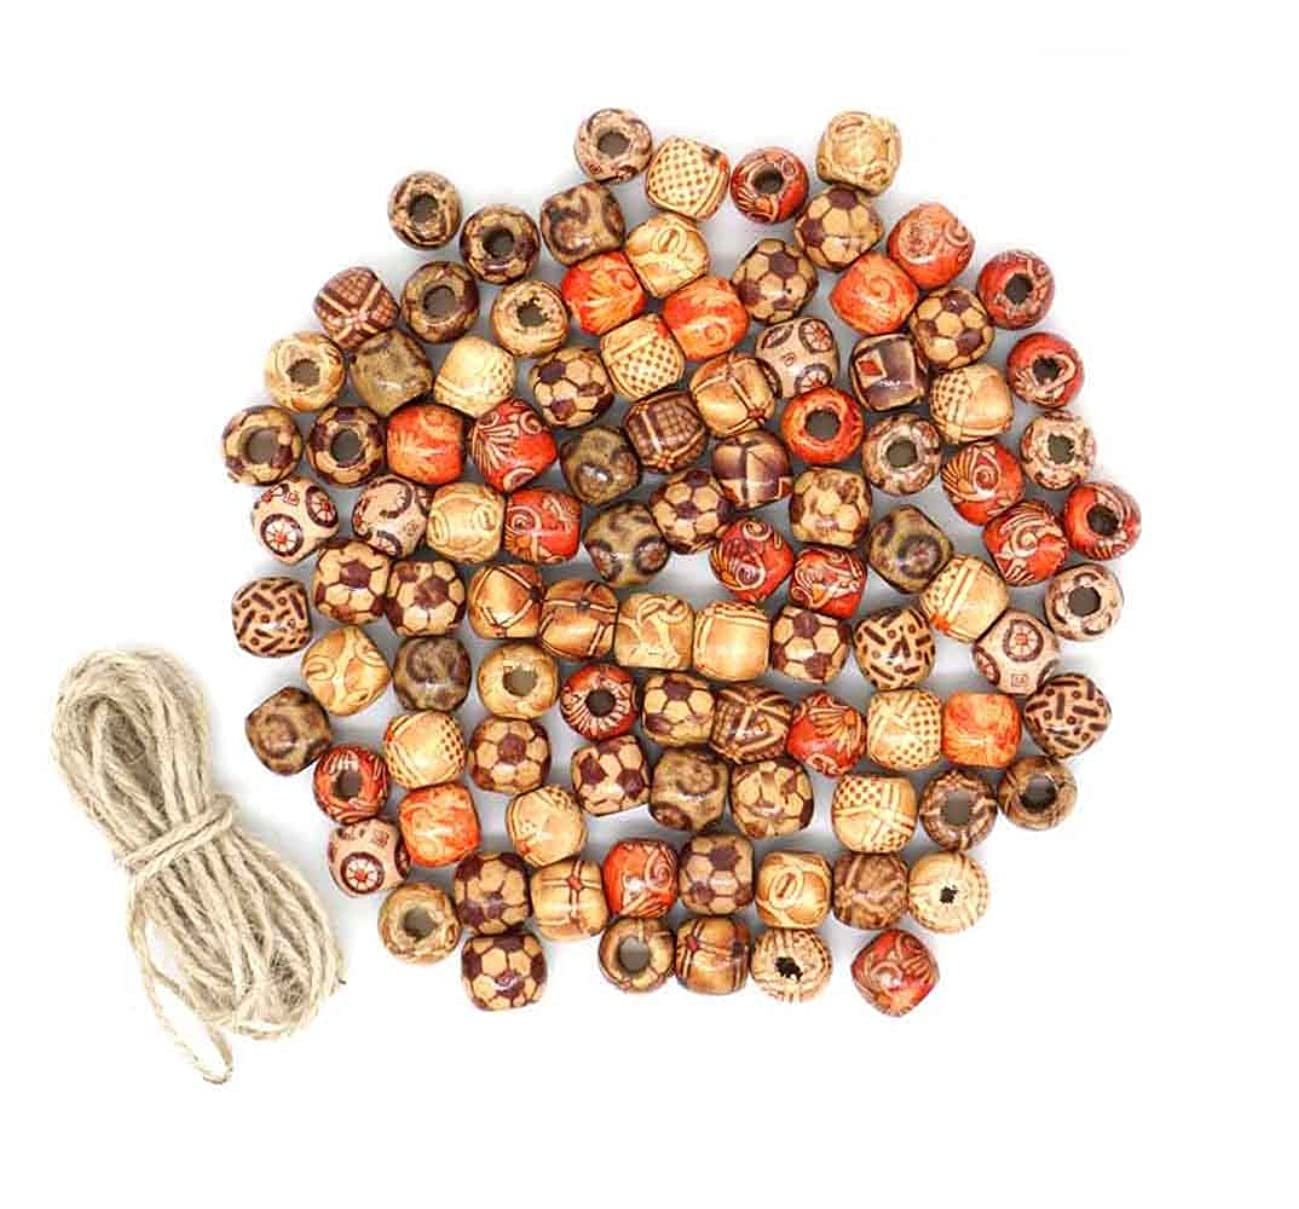 LuckyStar365 100 Pcs 12mm Assorted Painted Barrel Wooden Beads, Beading DIY Loose Wooden Beads